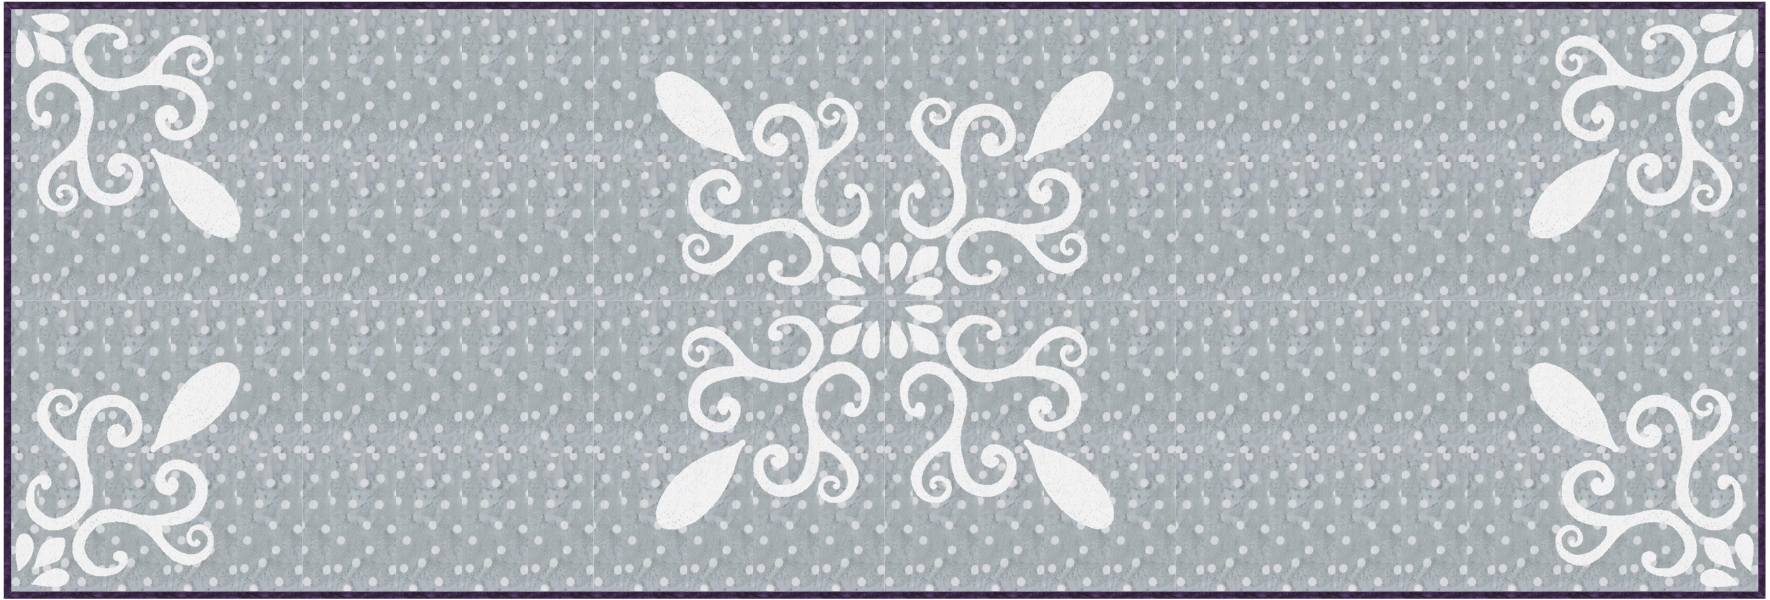 """Chantilly Lace, table runner XIV (20"""" x 60"""") simple elegance in stunning gray and white for hand or machine reverse applique. designed for Batik Textiles, fall 2017."""